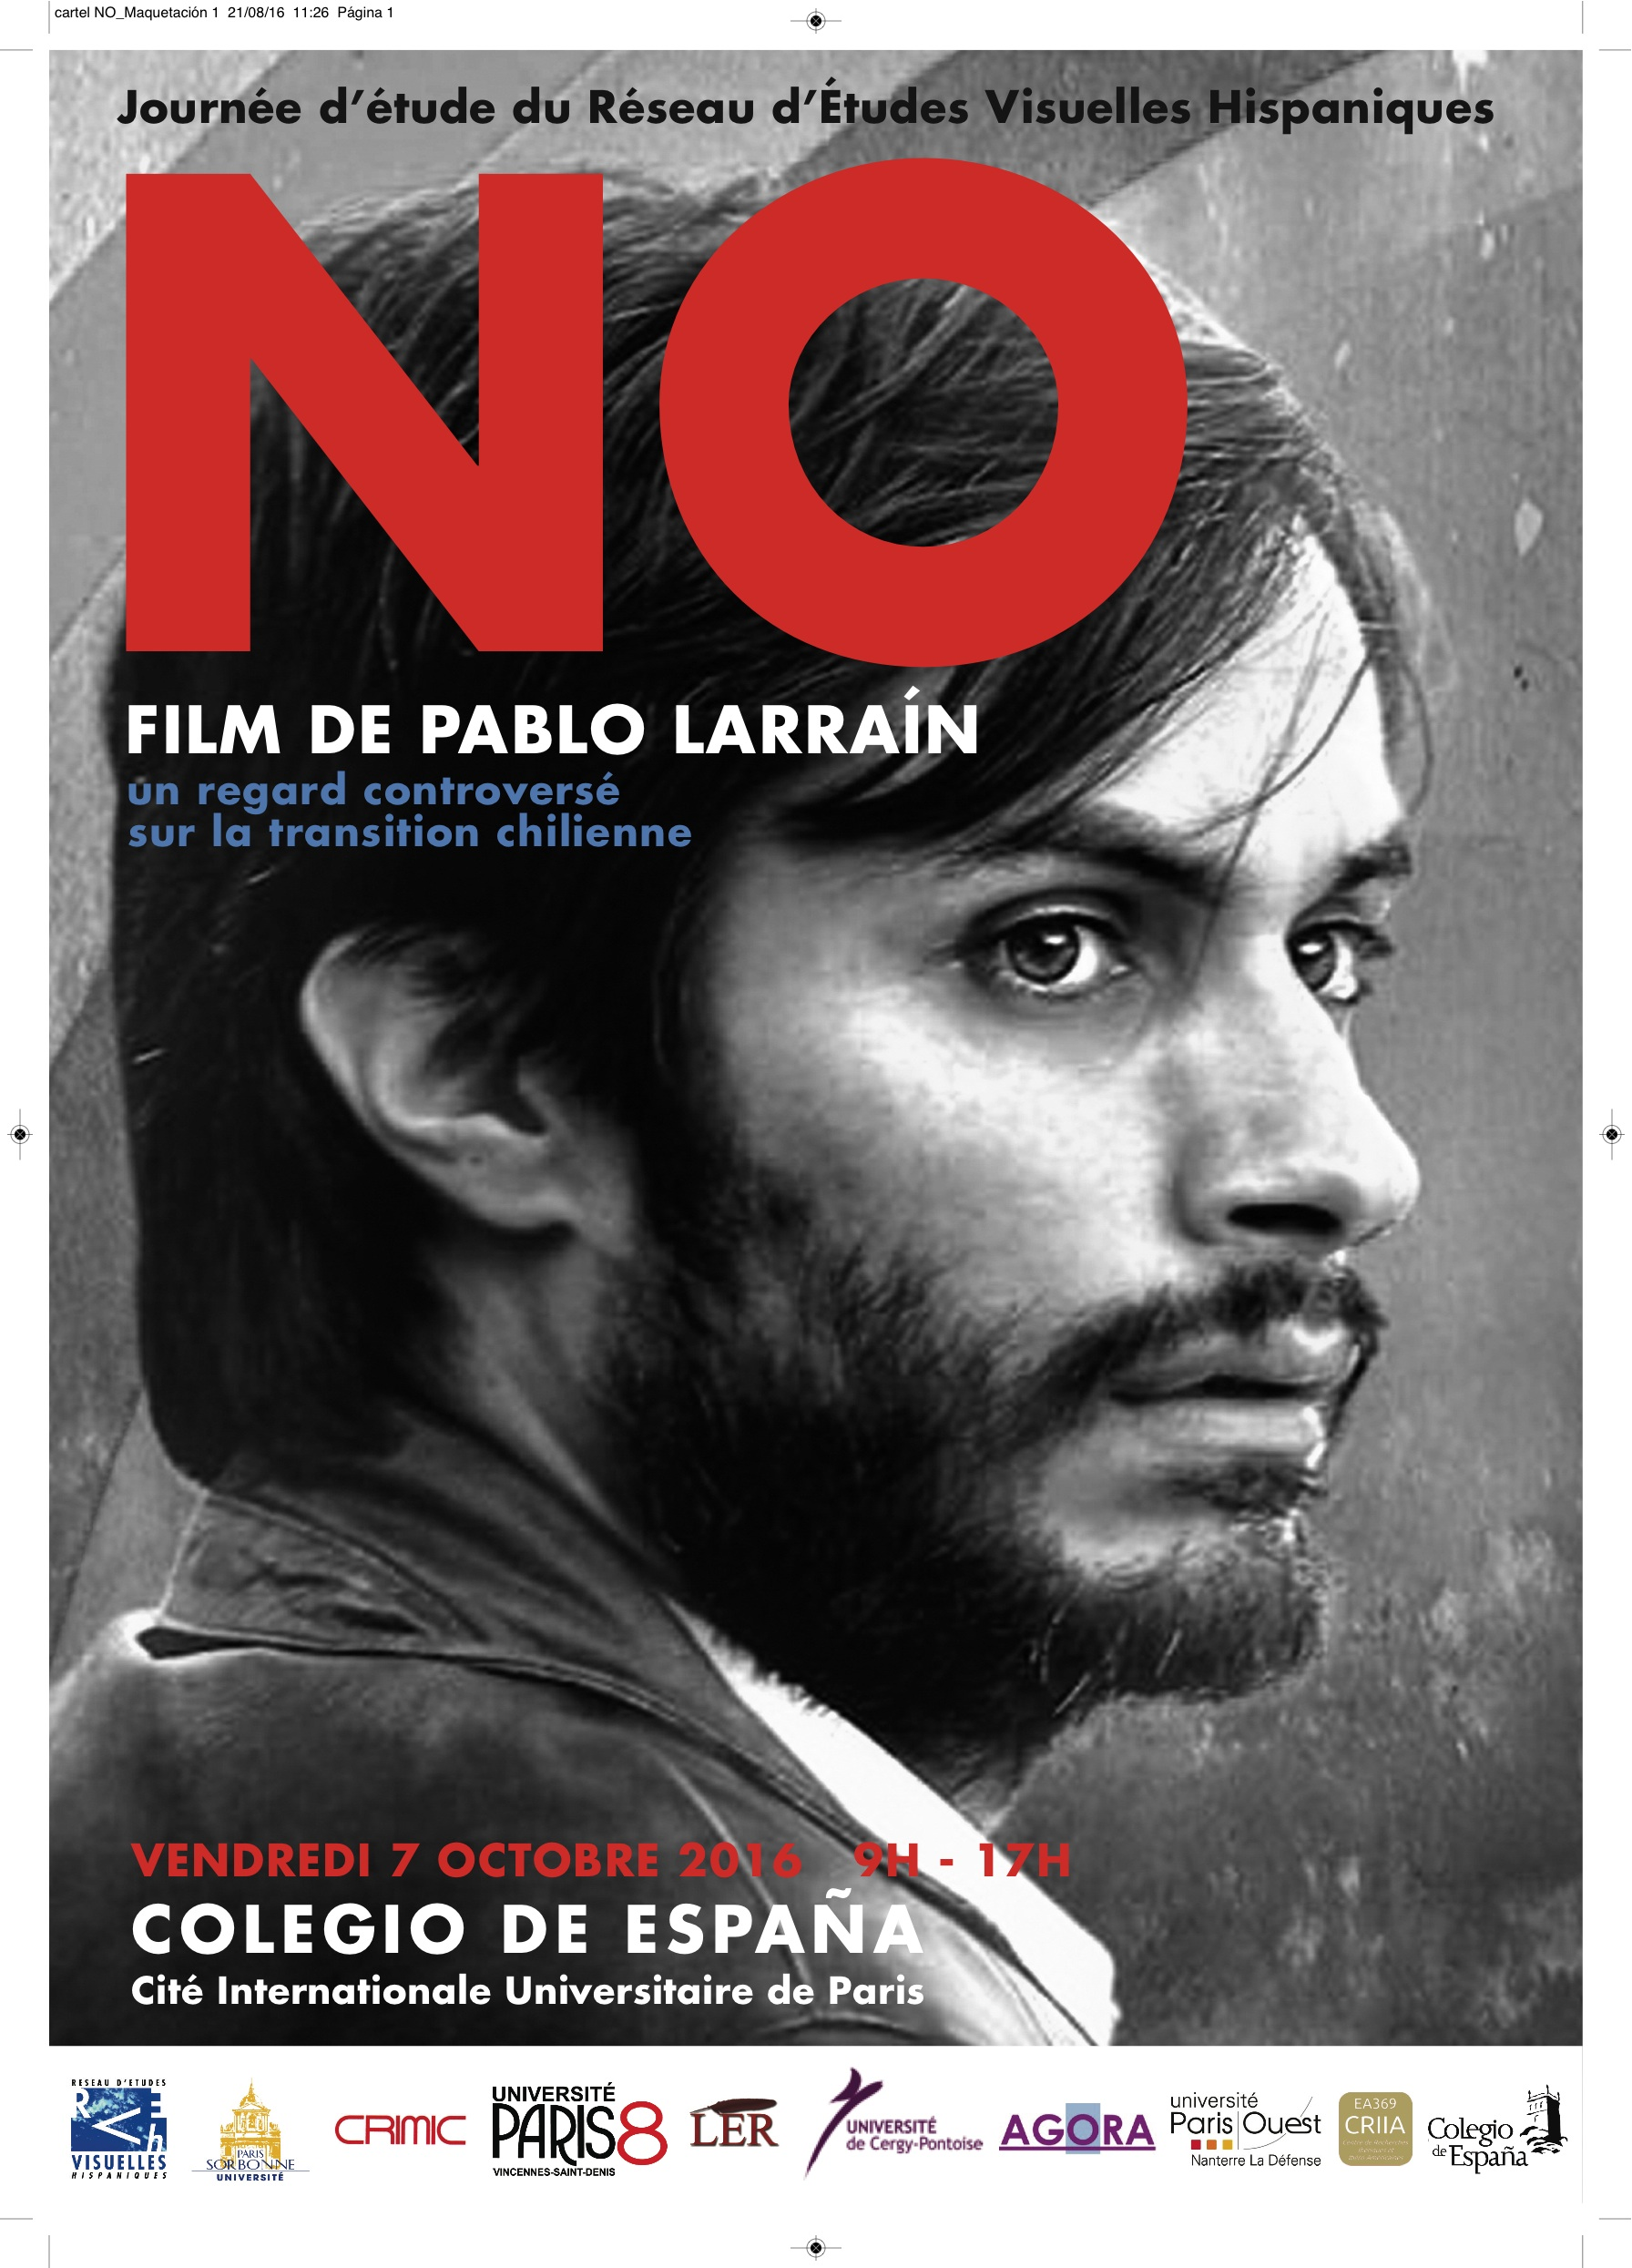 NO, film de Pablo Larraín: un regard controversé sur la Transition chilienne